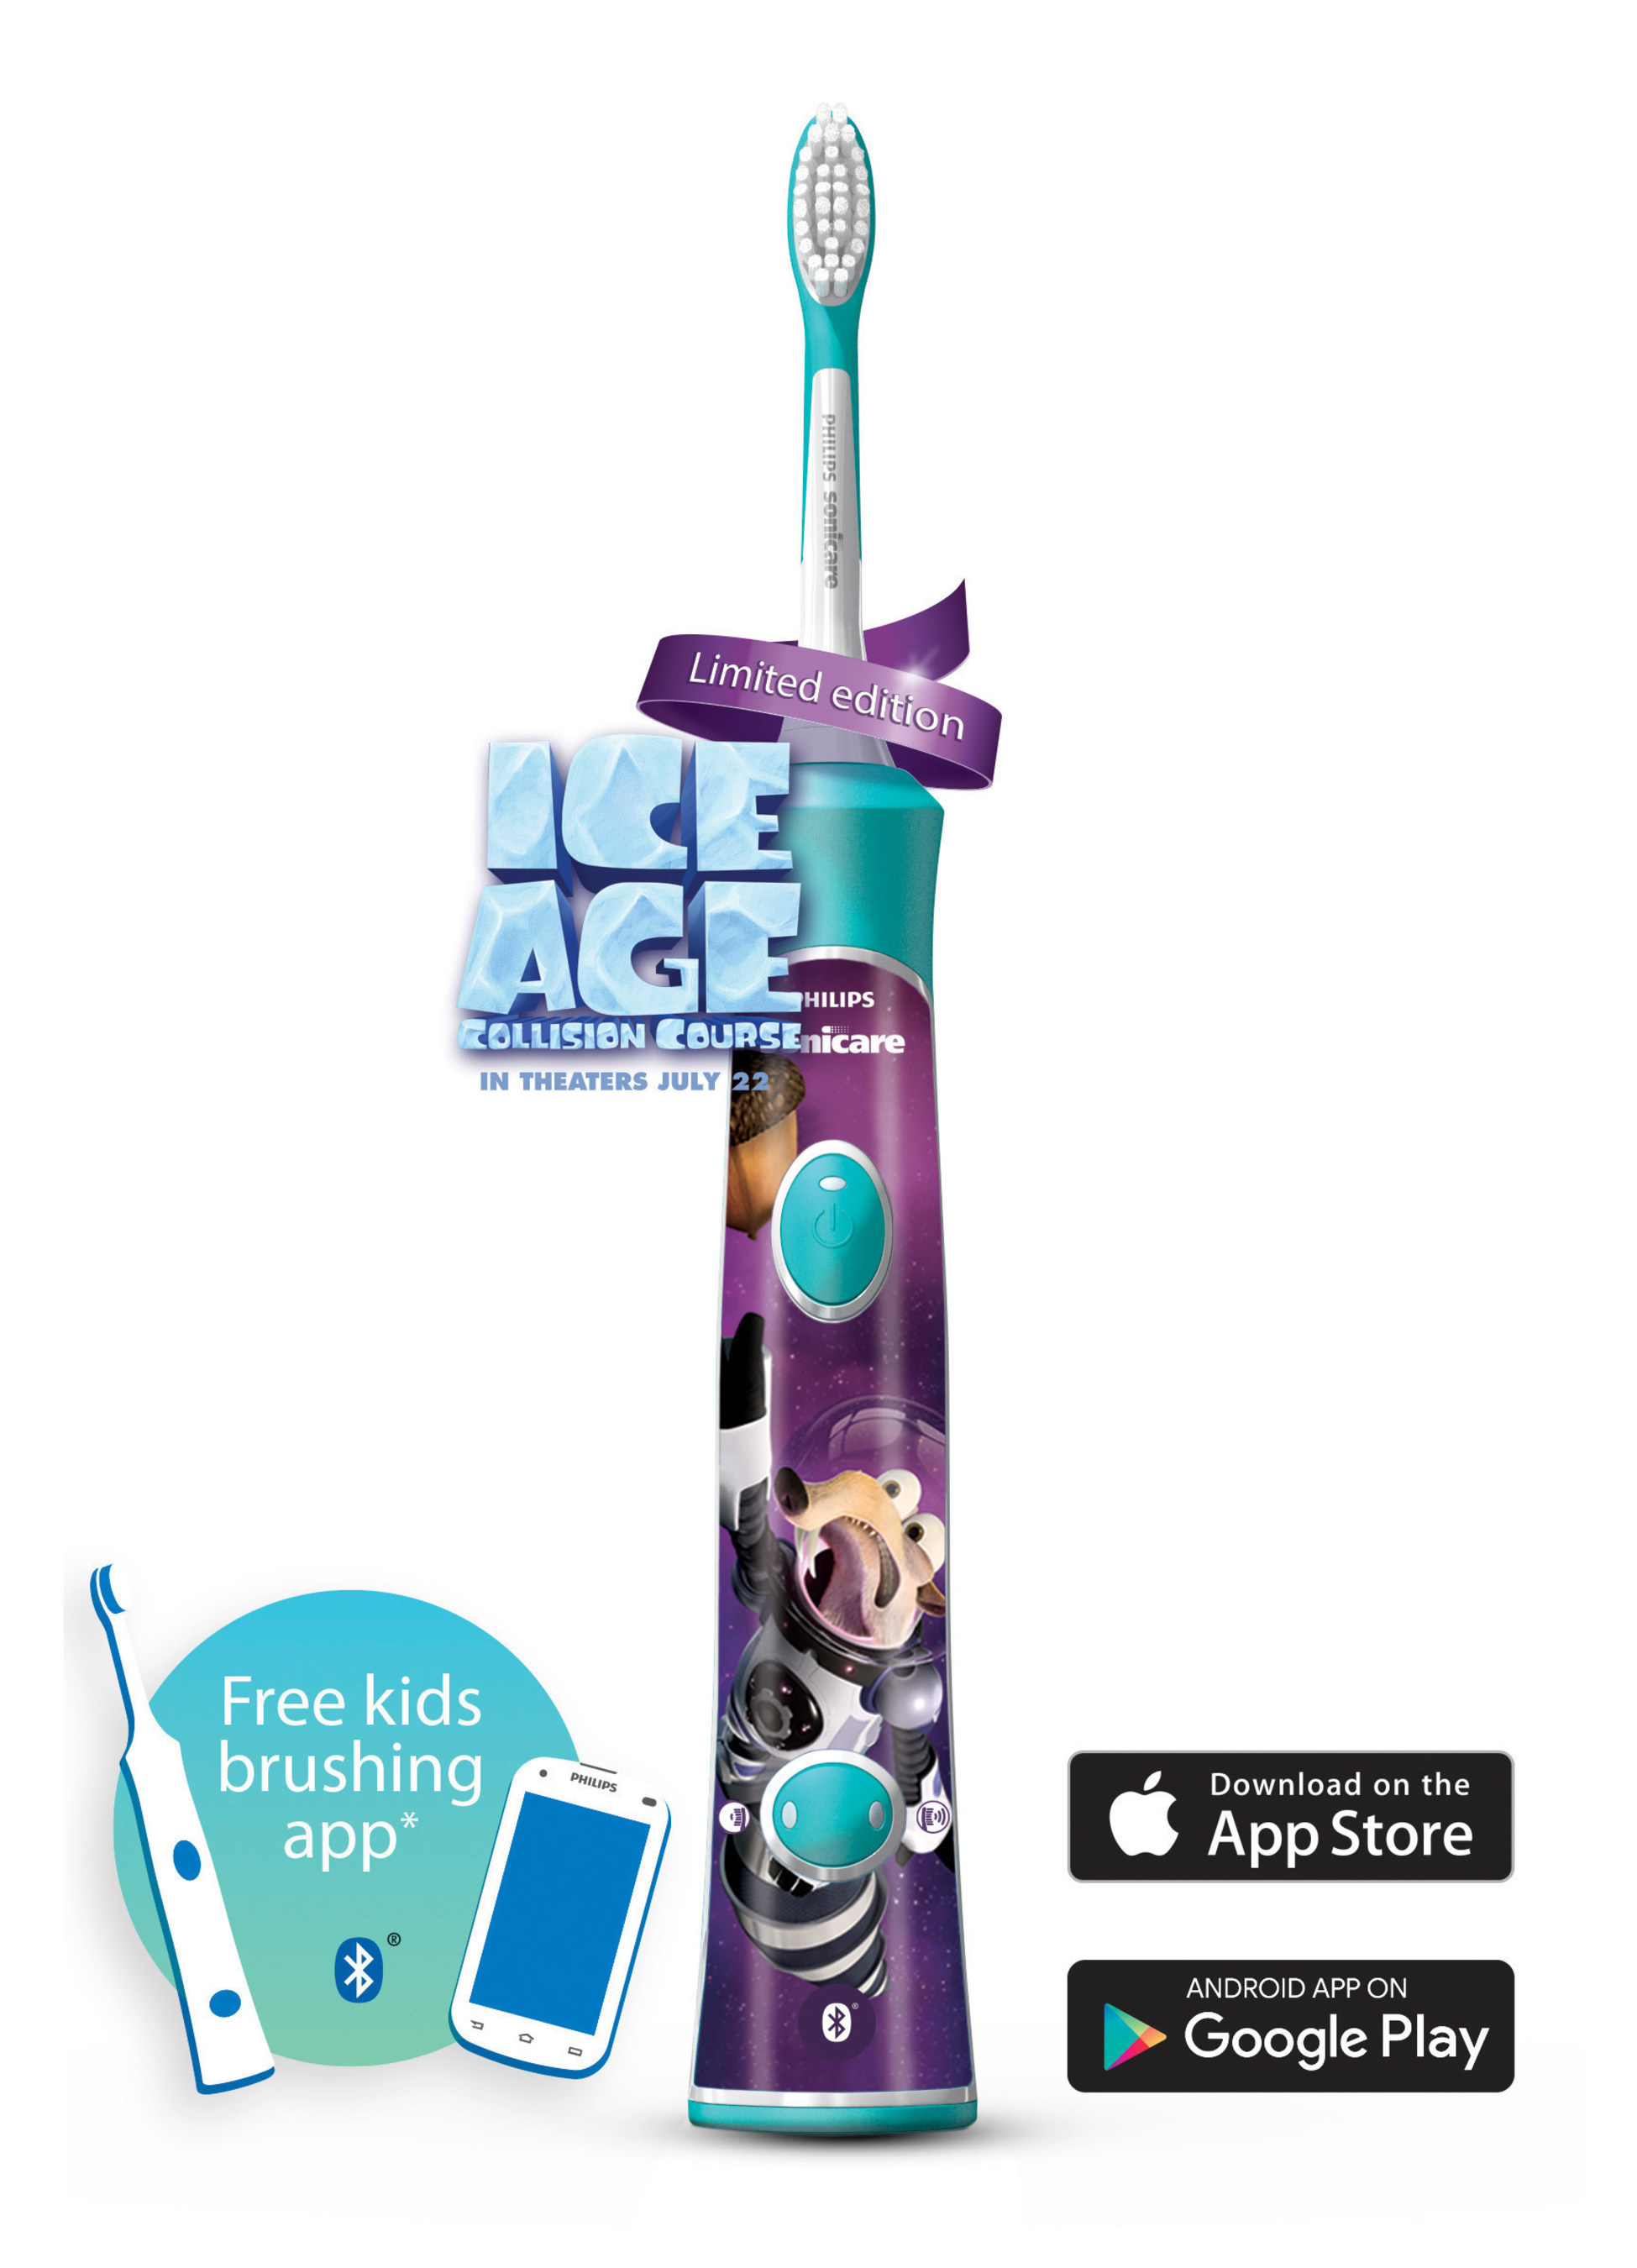 Philips Sonicare For Kids Ice Age: Collision Course.